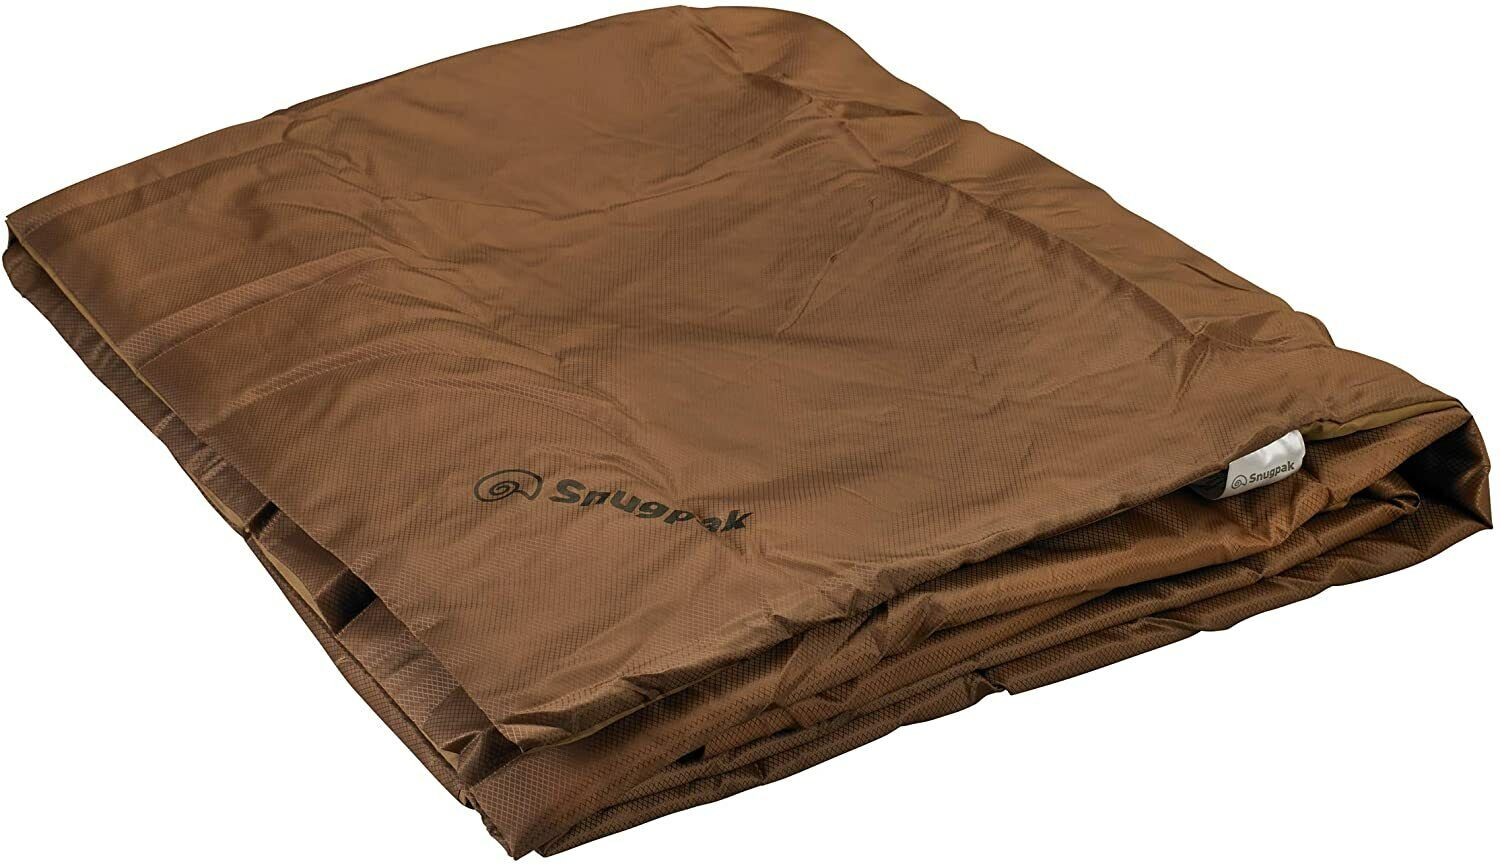 Snugpak Jungle Blanket Coyote Tan Lightweight Compact Survival Camping 92247